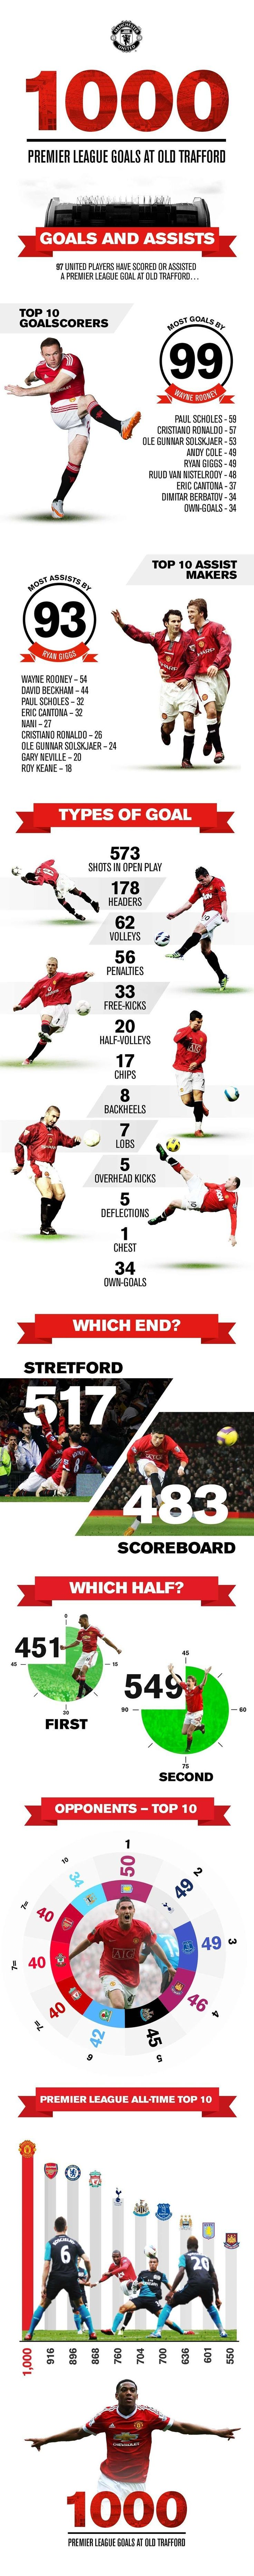 1,000 Premier League goals at Old Trafford infographic - Official Manchester United Website #soccerinfographic